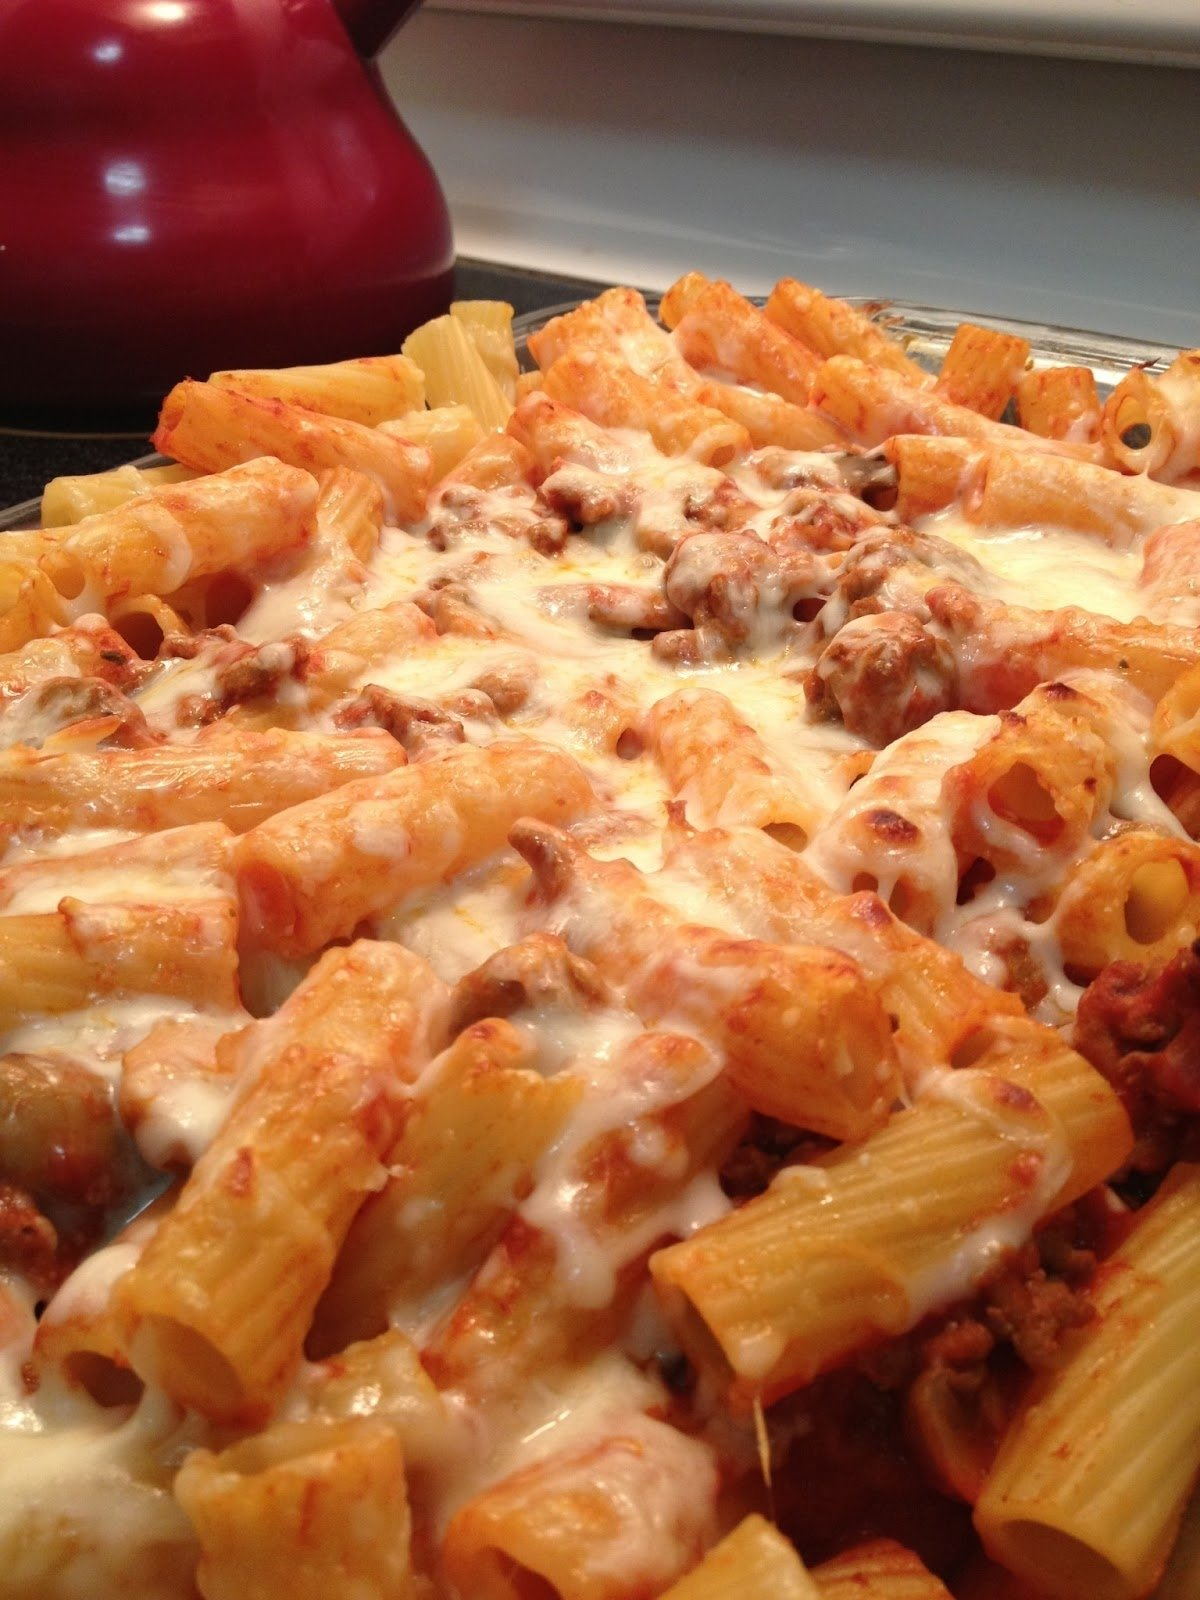 10 Attractive Meal Ideas With Ground Turkey ground turkey baked rigatoni stress baking 2020